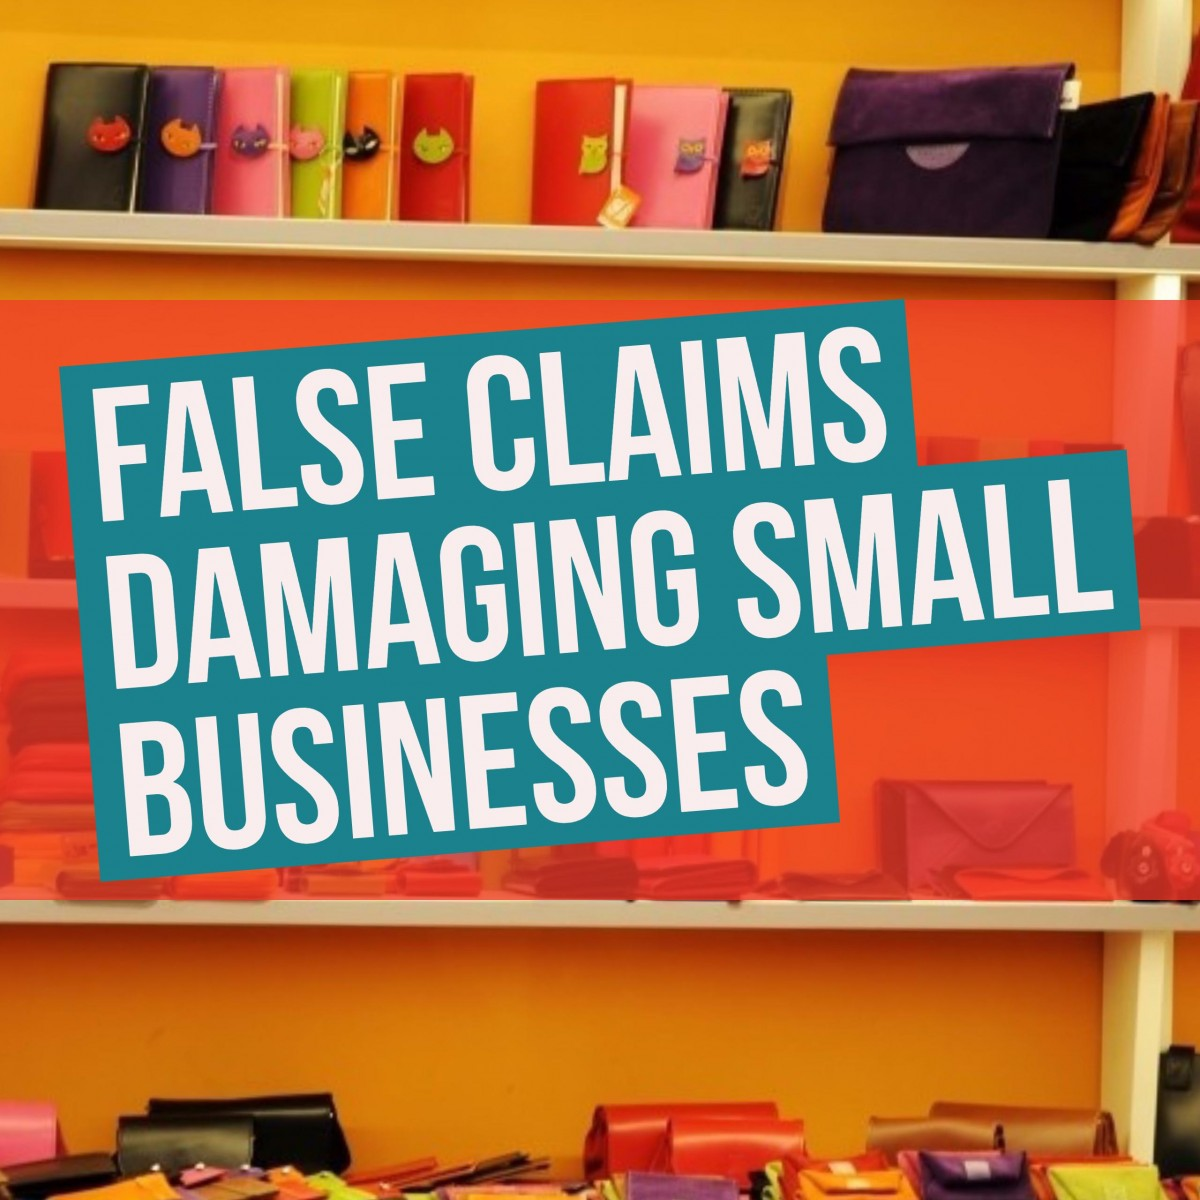 false claims are damaging small businesses insure my shop offers great value retail insurance